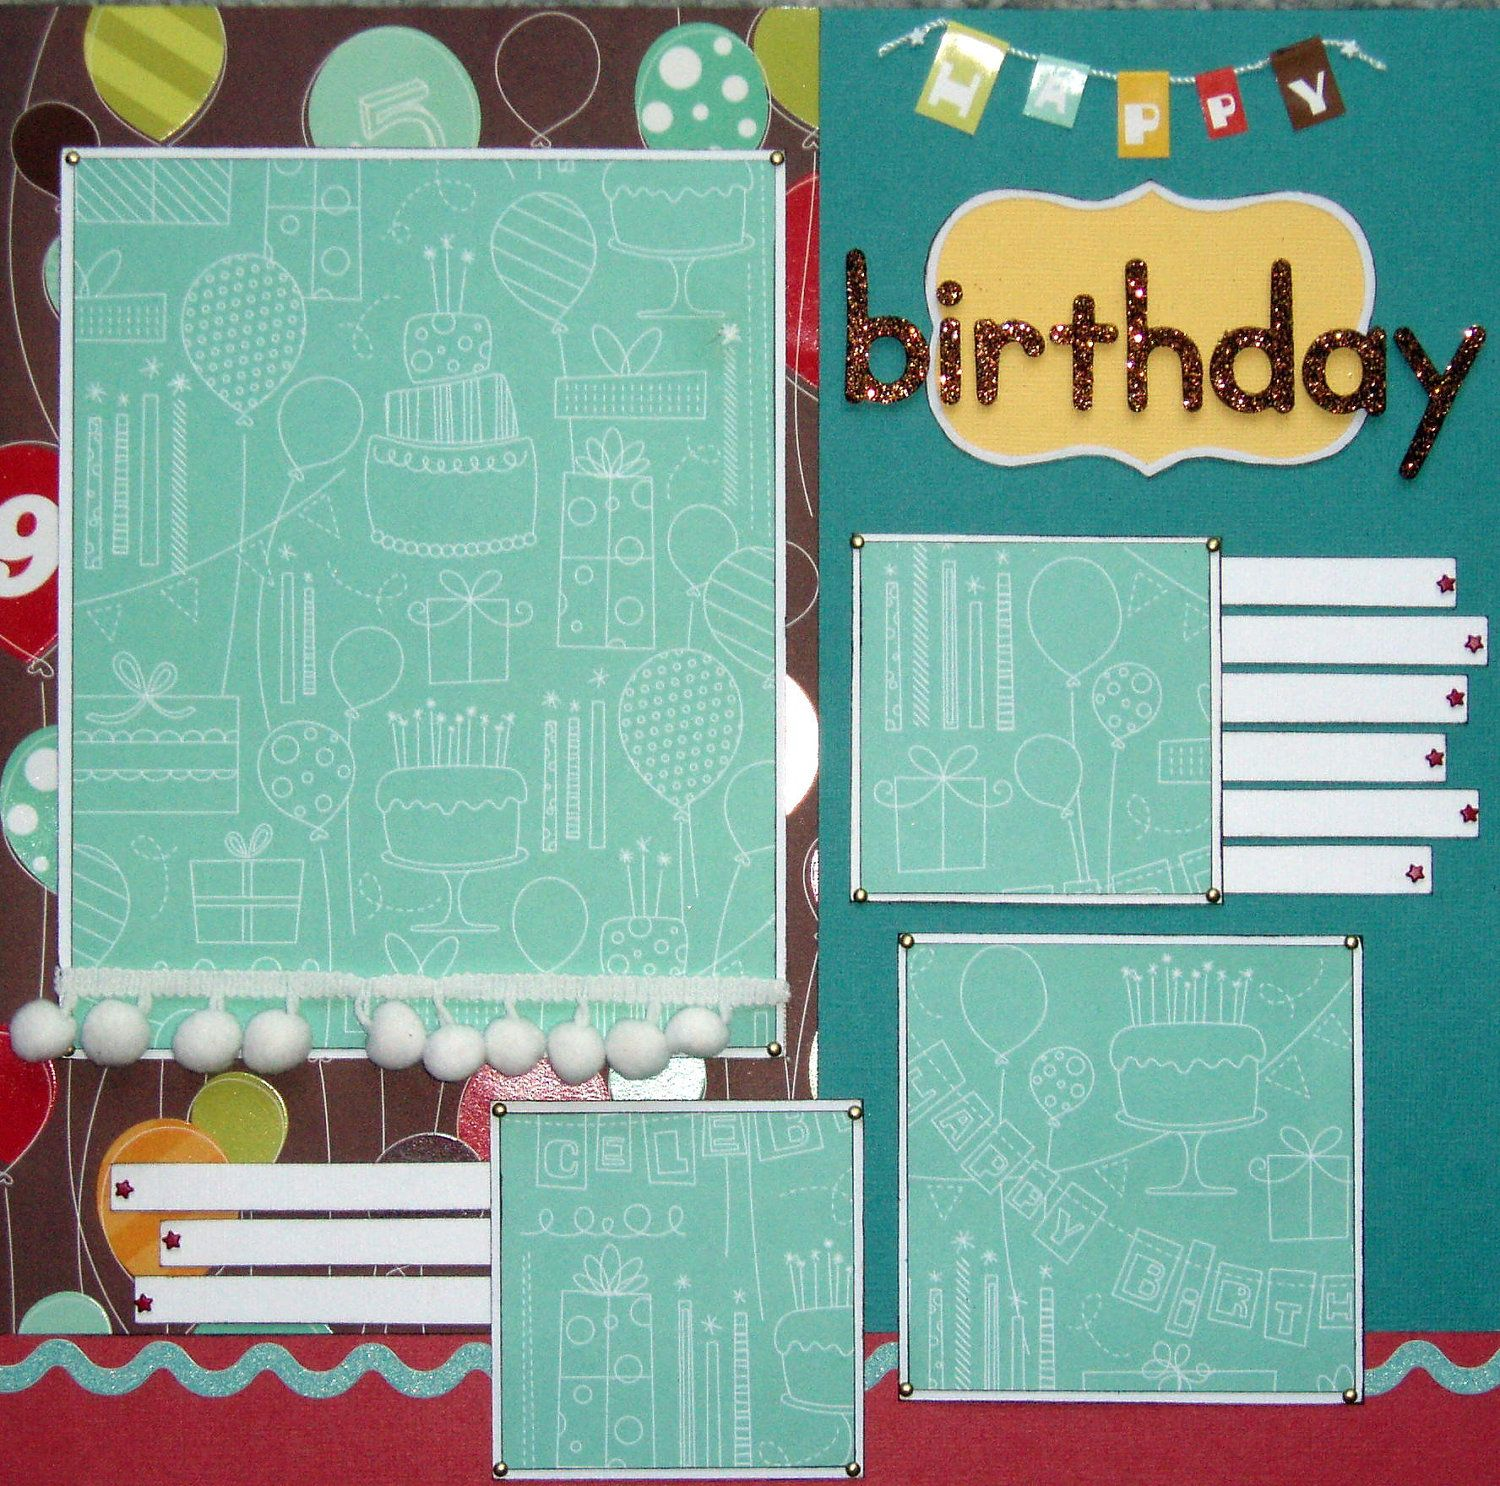 Scrapbook layouts images 12x12 custom premade scrapbook layout birthday by ntvimage on etsy - Scrapbooking idees pages ...